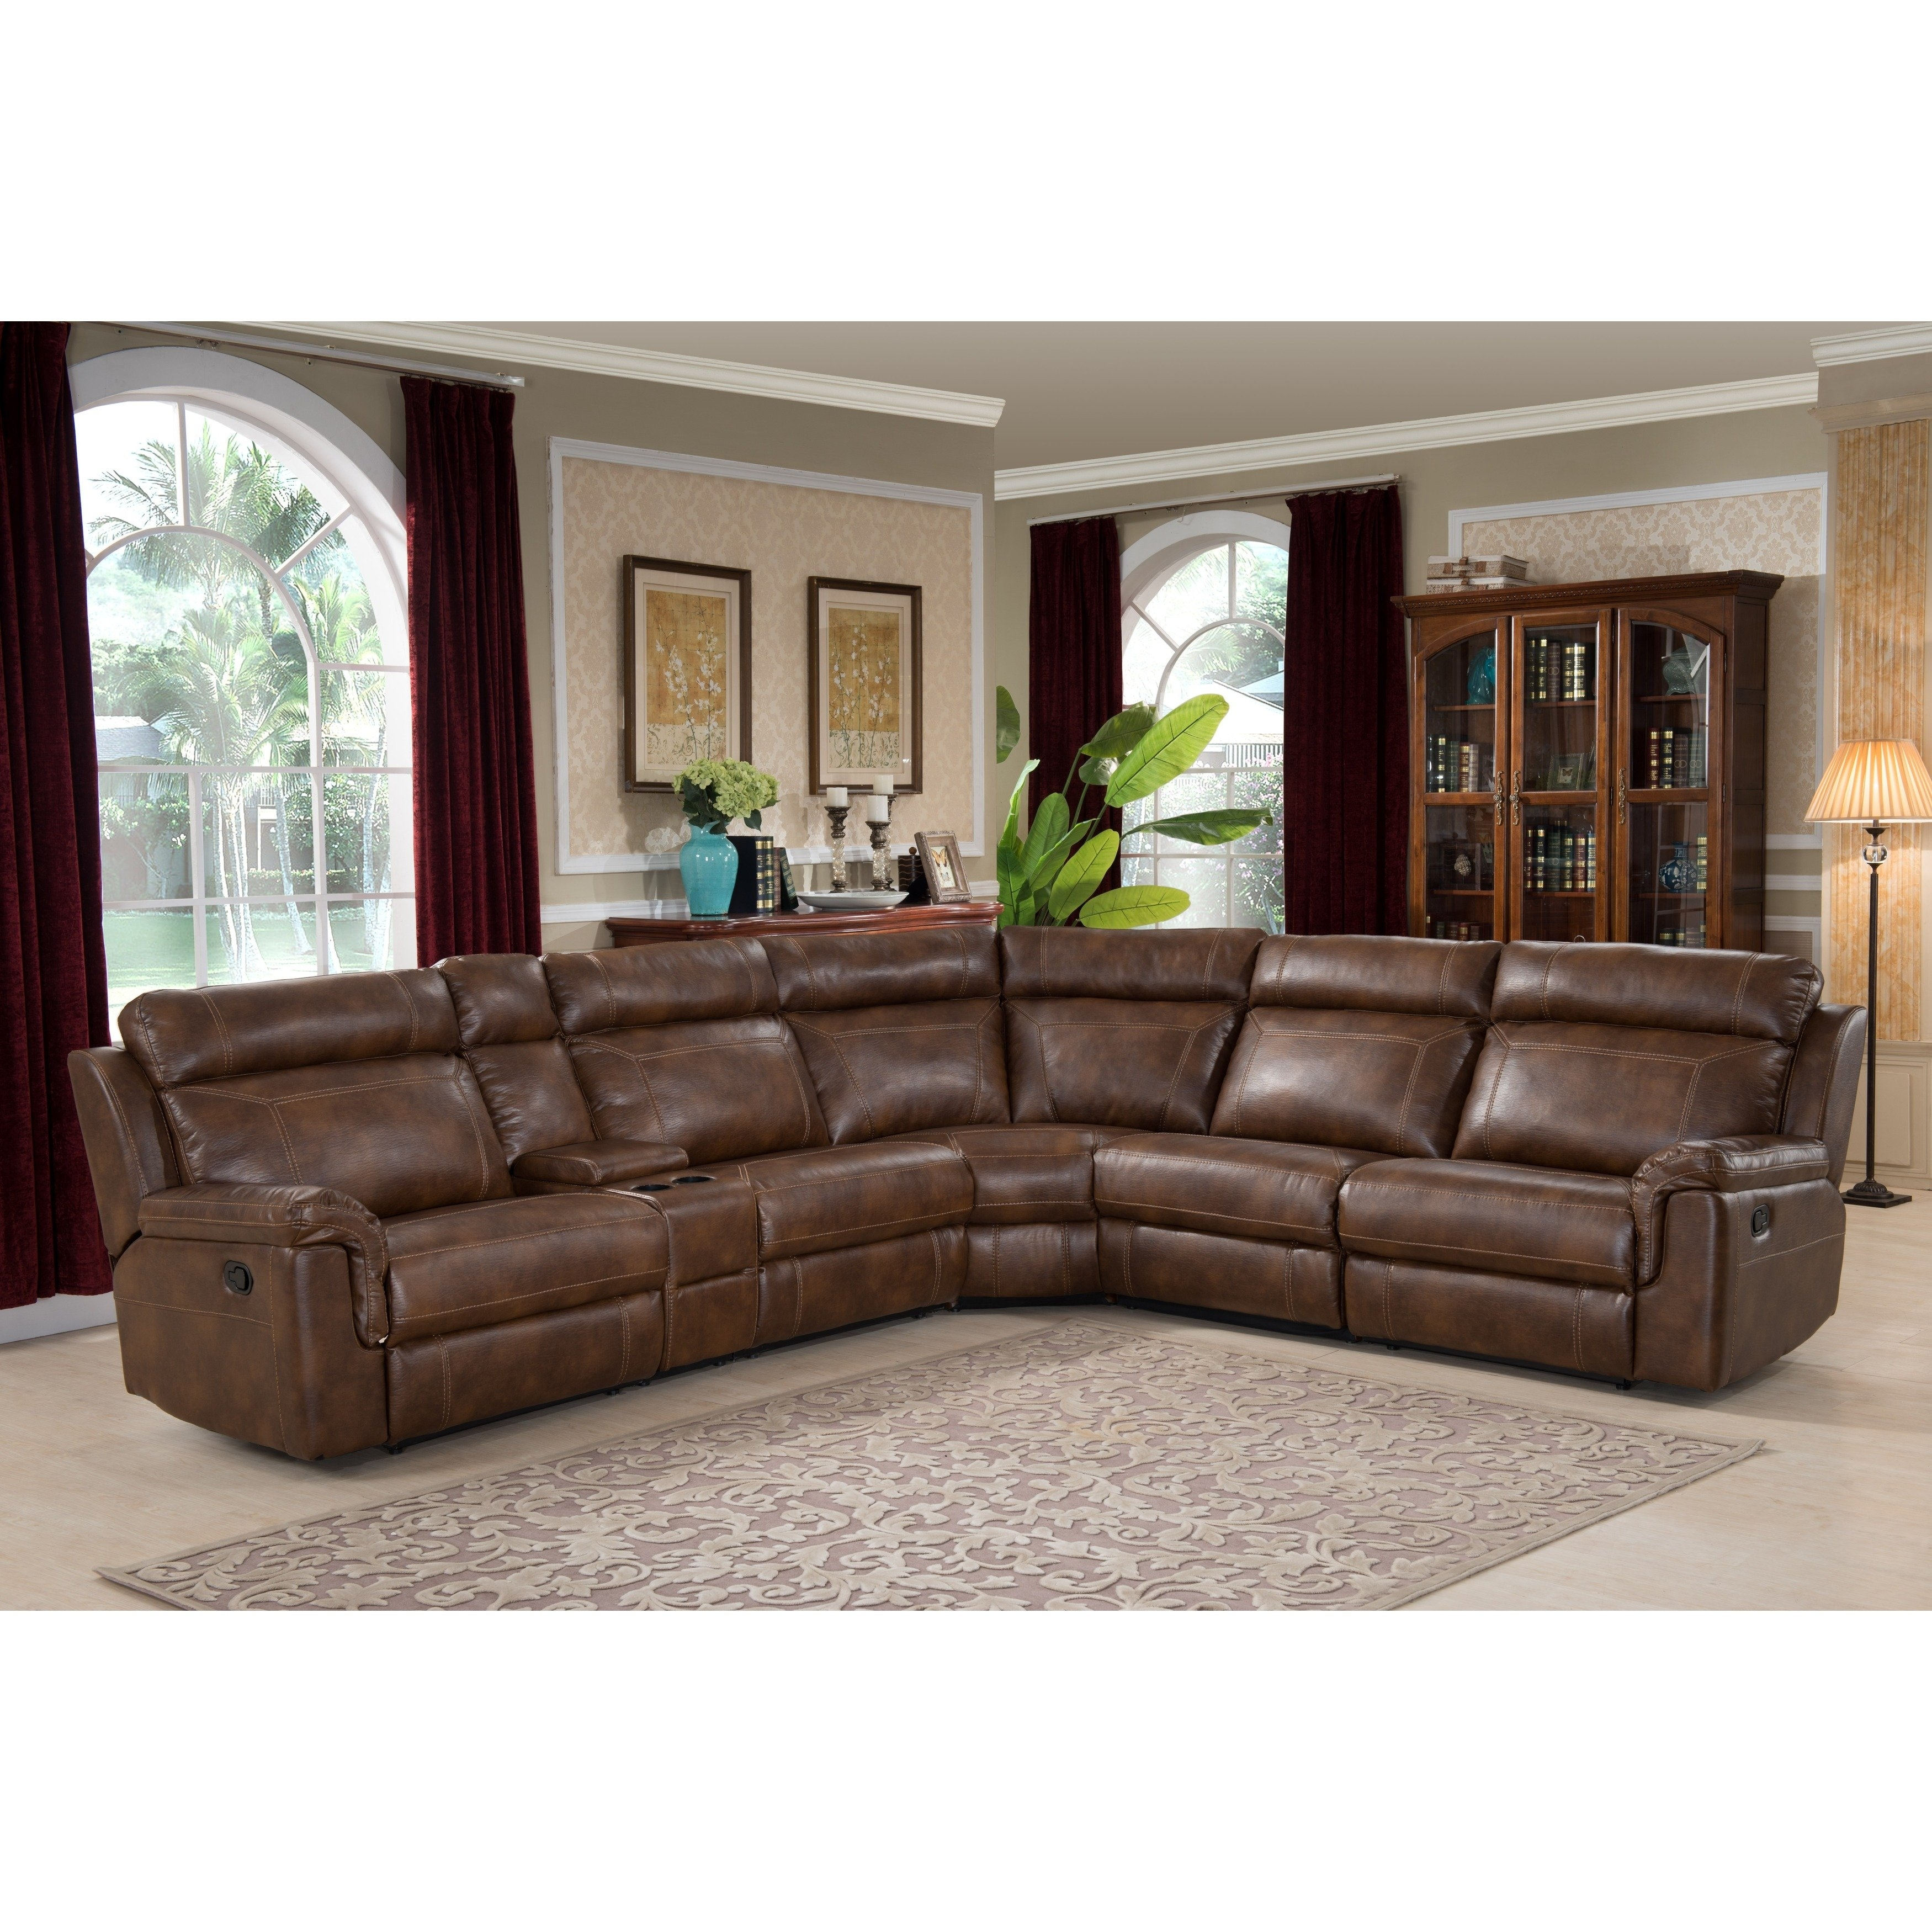 Shop Nicole Brown Large 6-Piece Family Sectional With 3 Recliners pertaining to Harper Down 3 Piece Sectionals (Image 27 of 30)